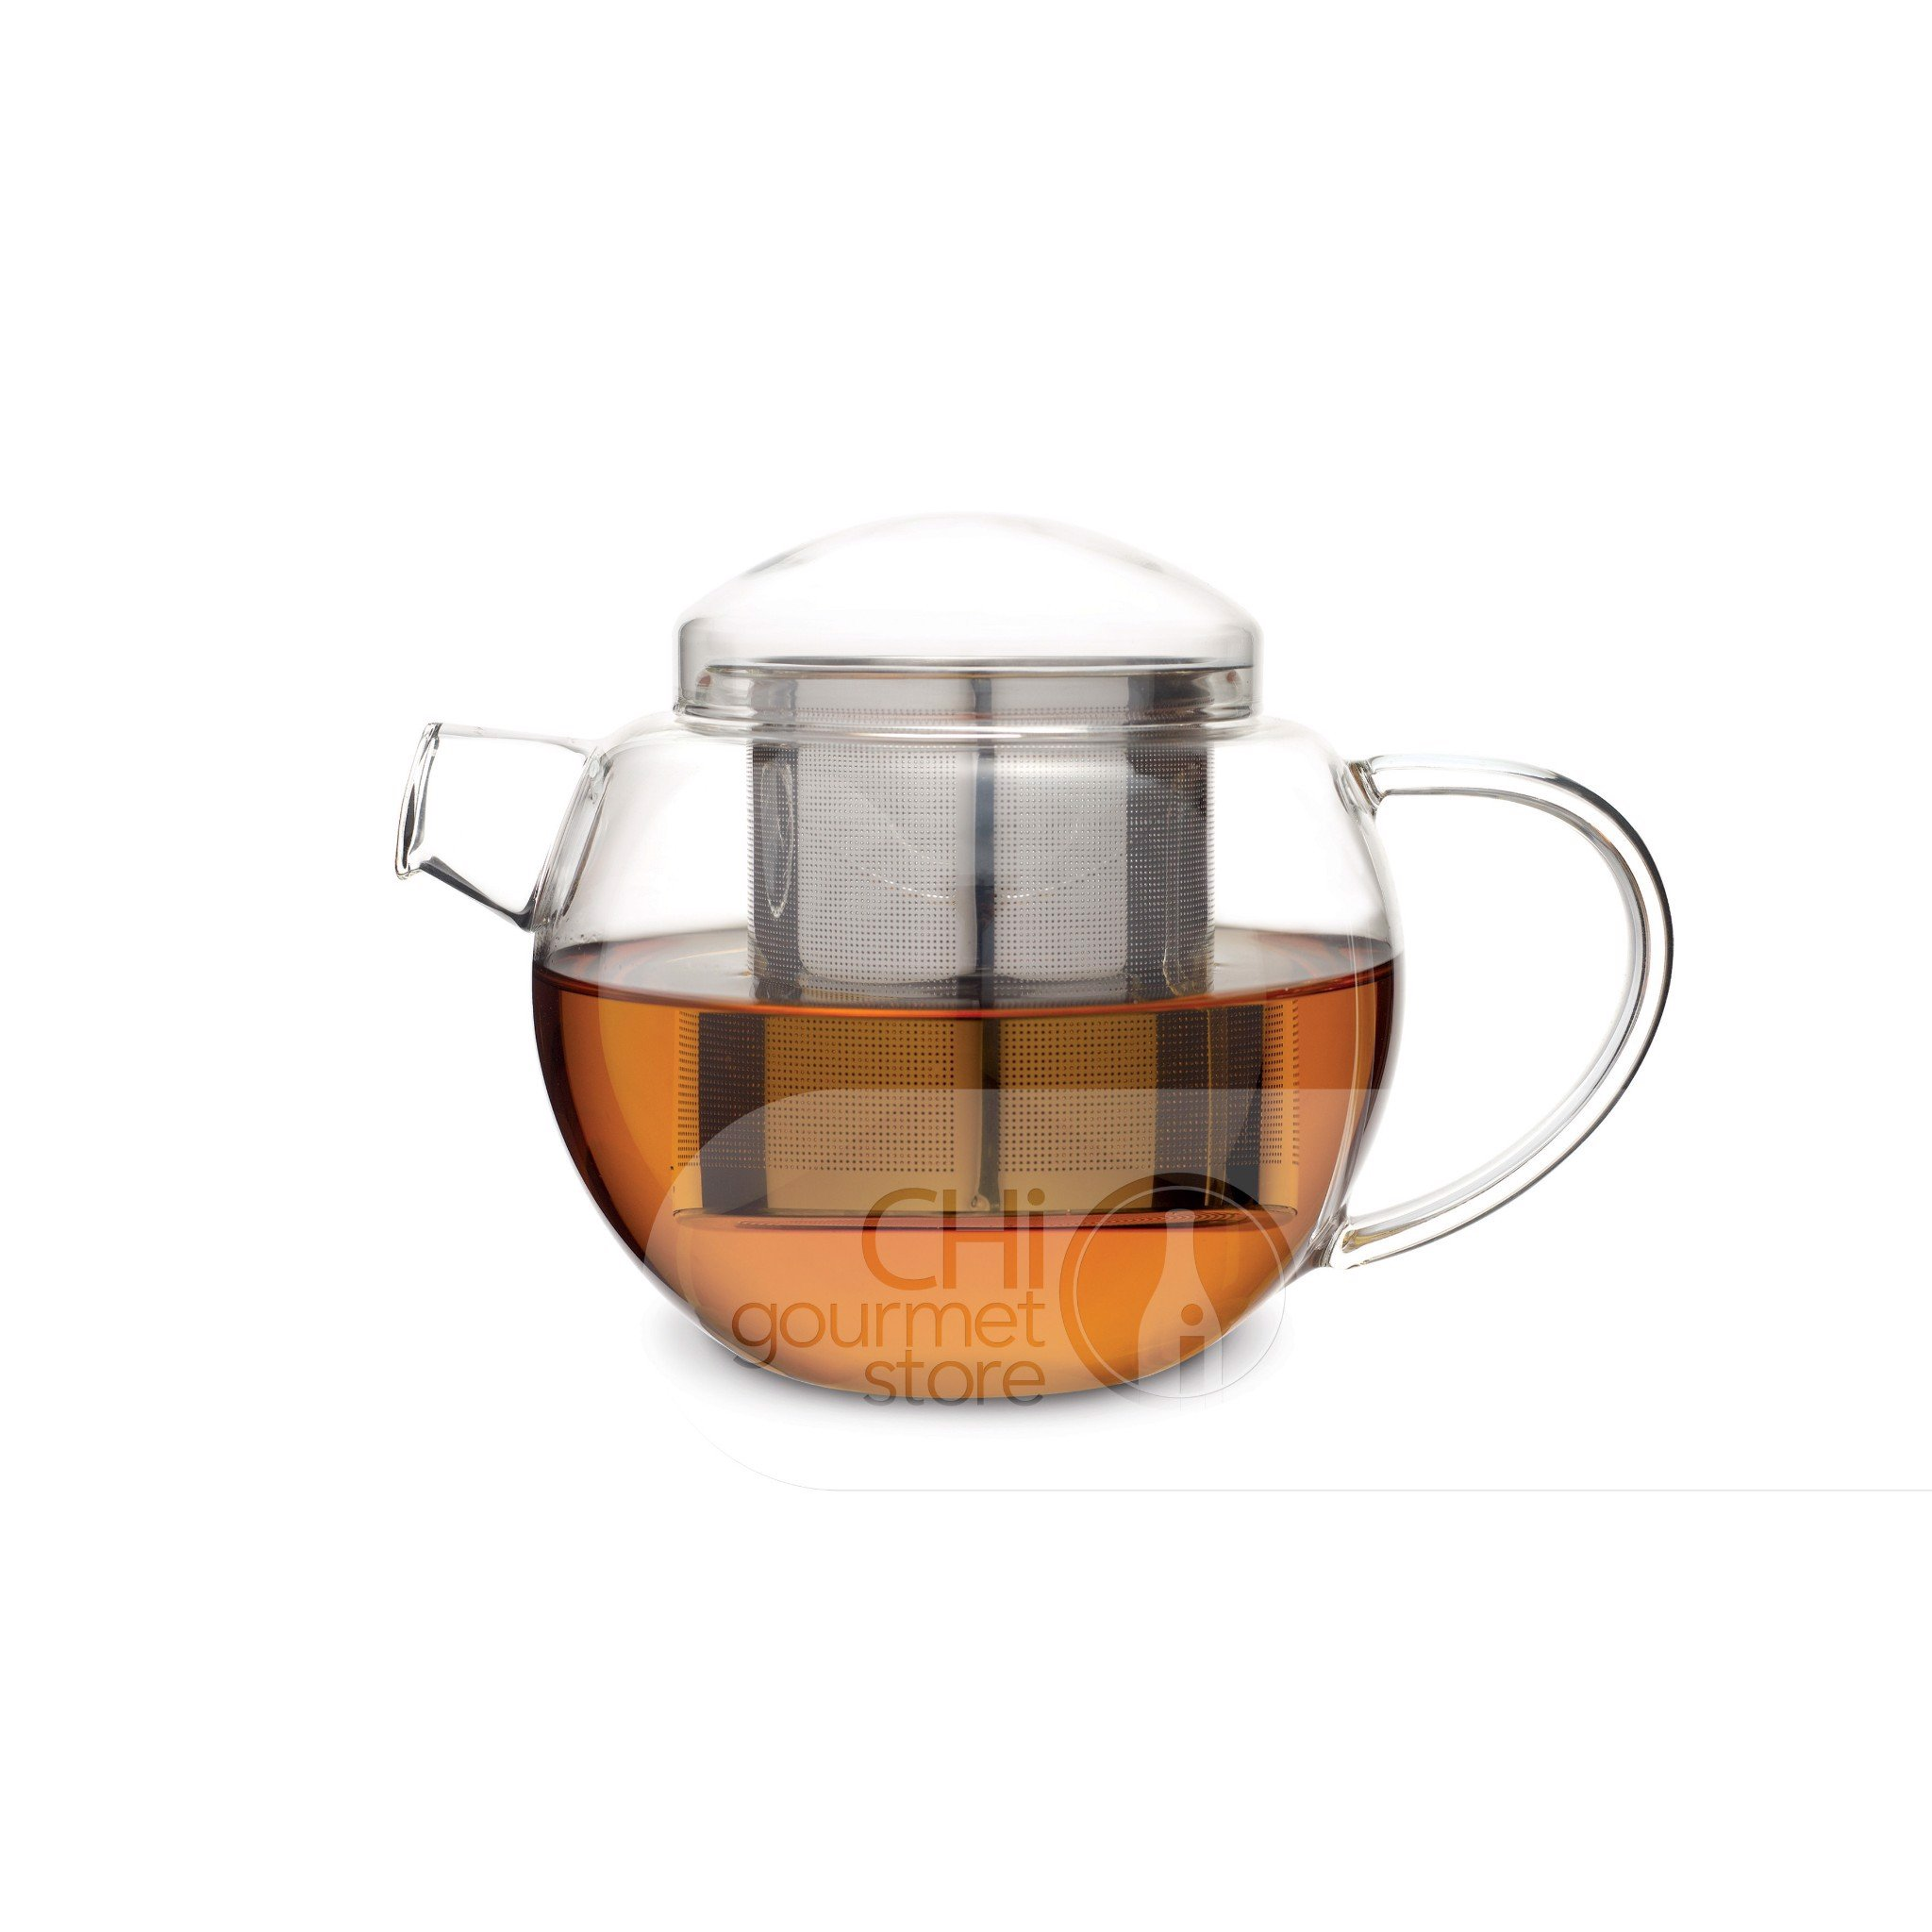 Pro Tea Glass Teapot with Infuser (Clear) 900ml